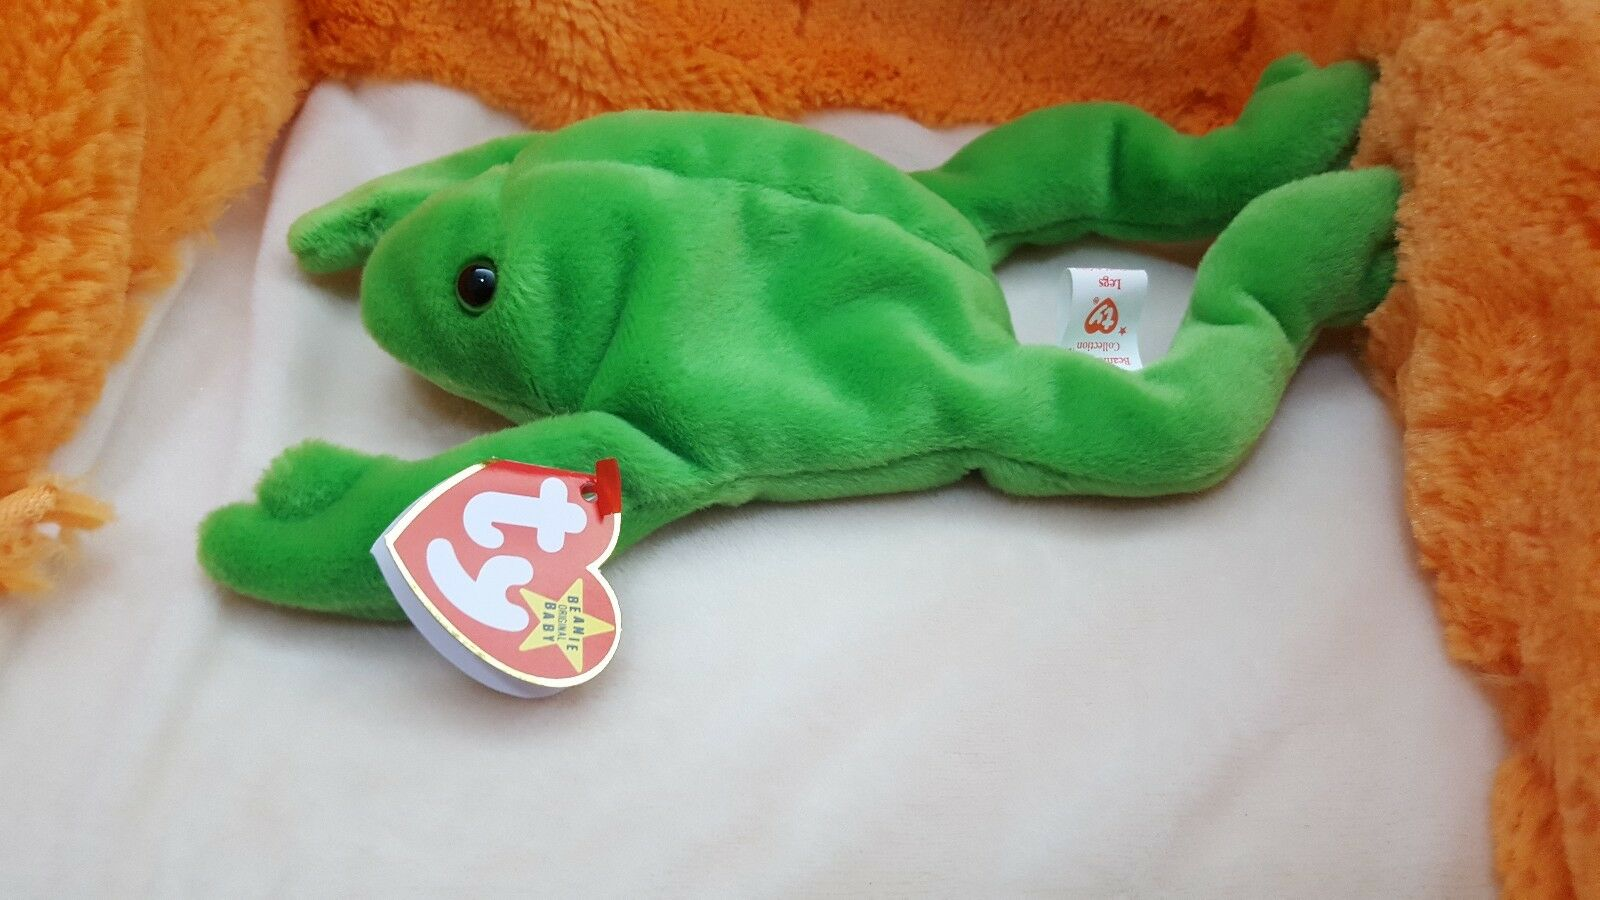 TY TY TY Beanie Baby Legs the Frog style 4020 with ERRORS VERY RARE style 4020 4-23-93 96ea44